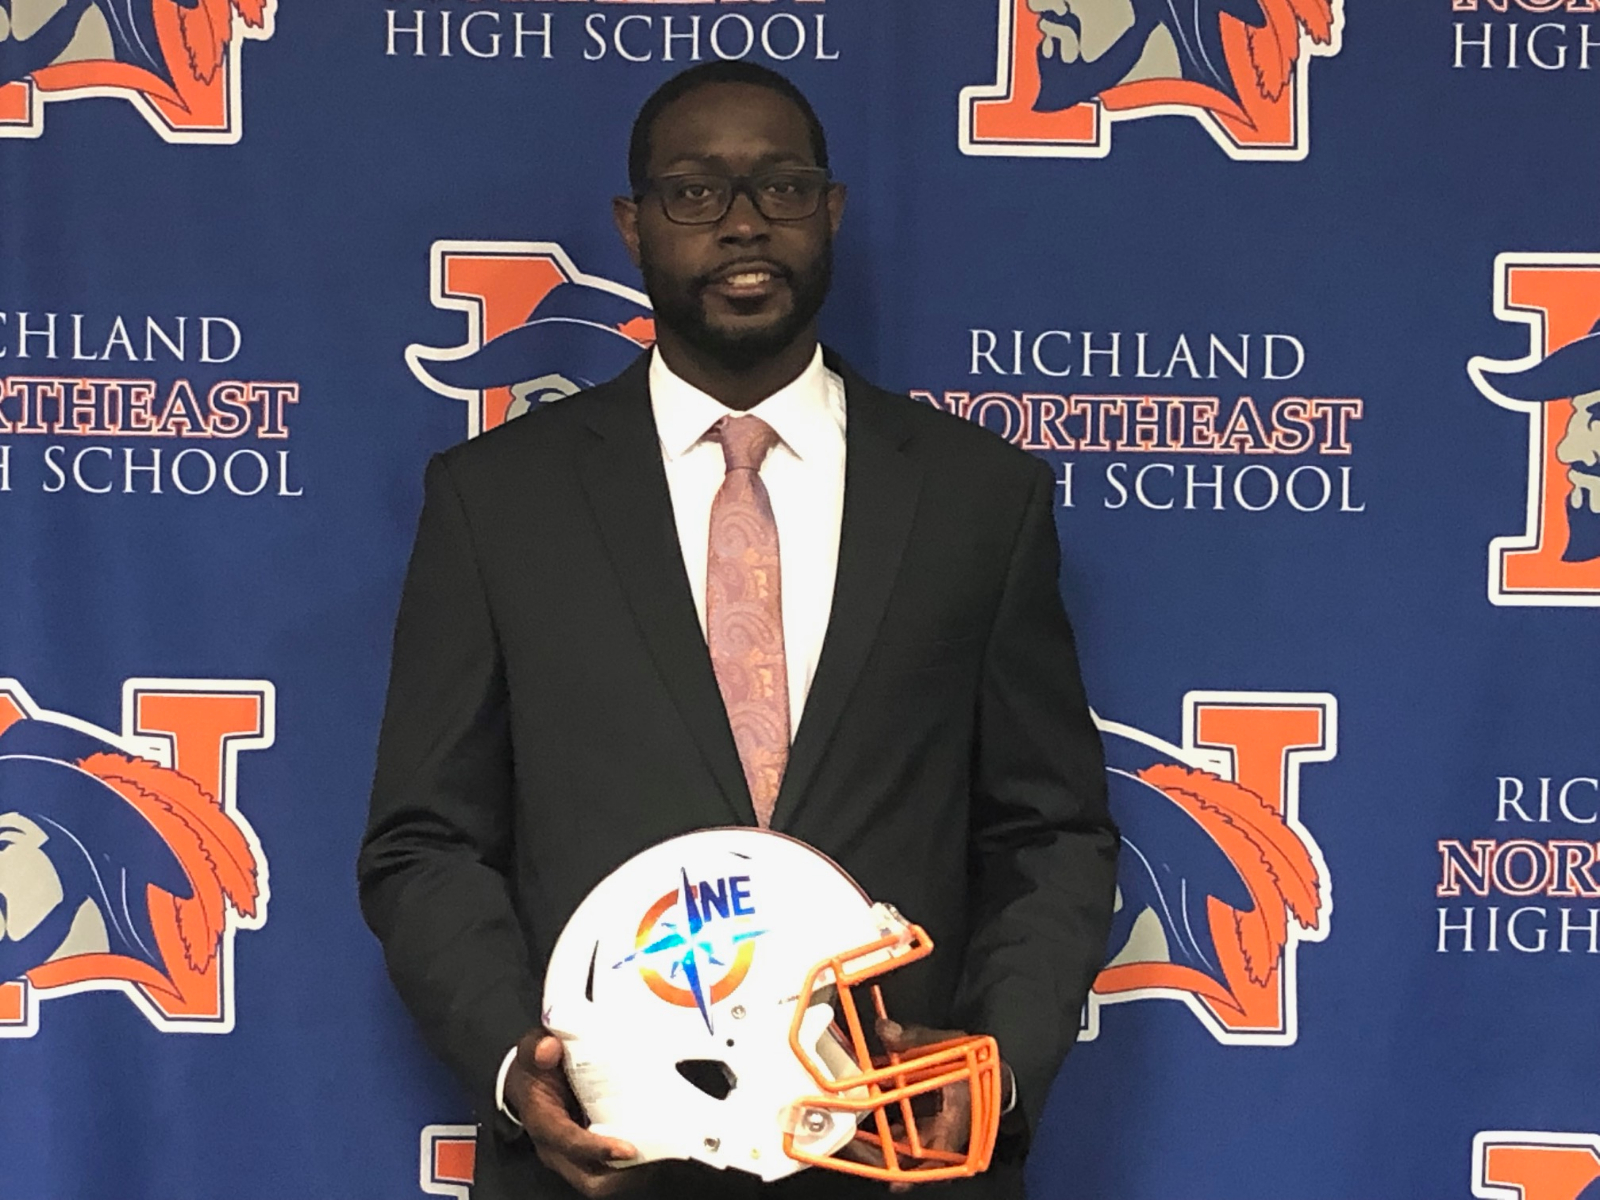 RNE Welcomes Coach Richardson